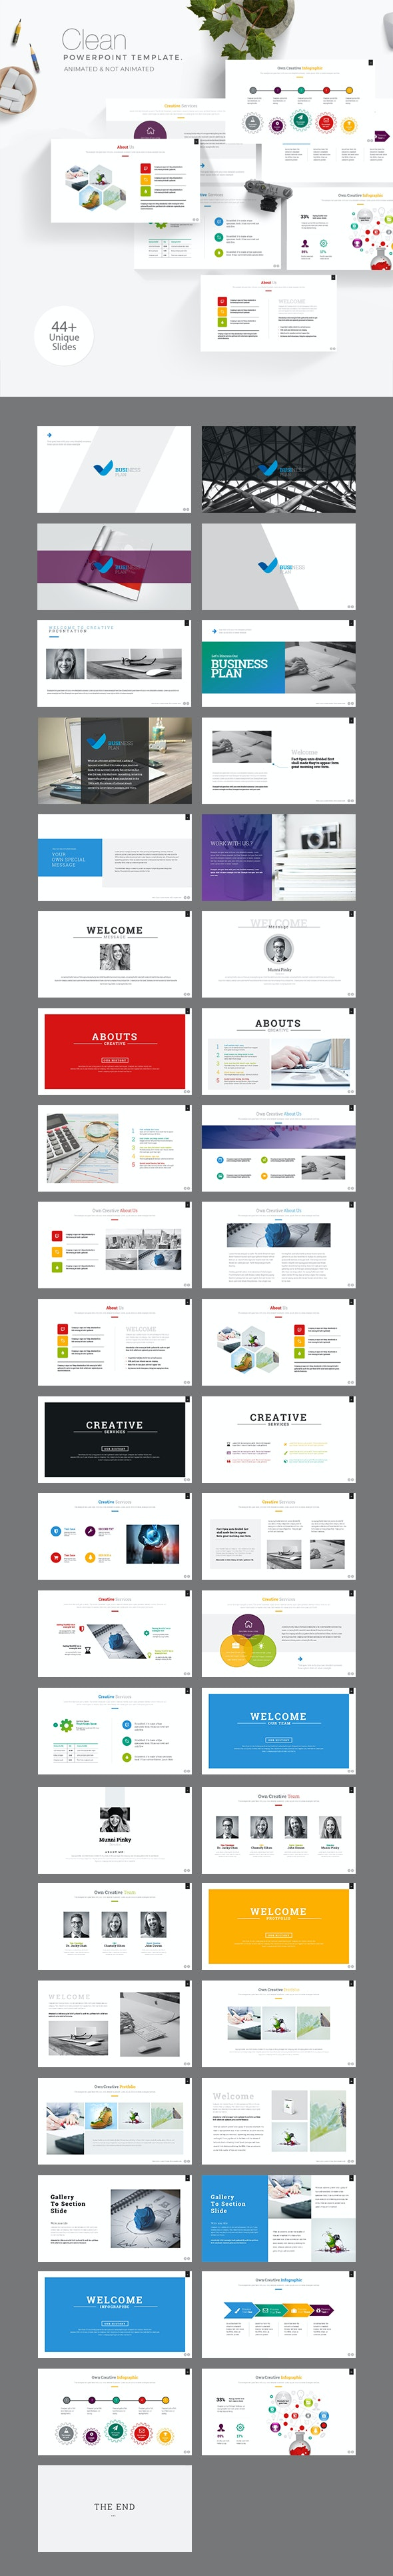 Business Plan Powerpoint PresentationTemplate - Business PowerPoint Templates